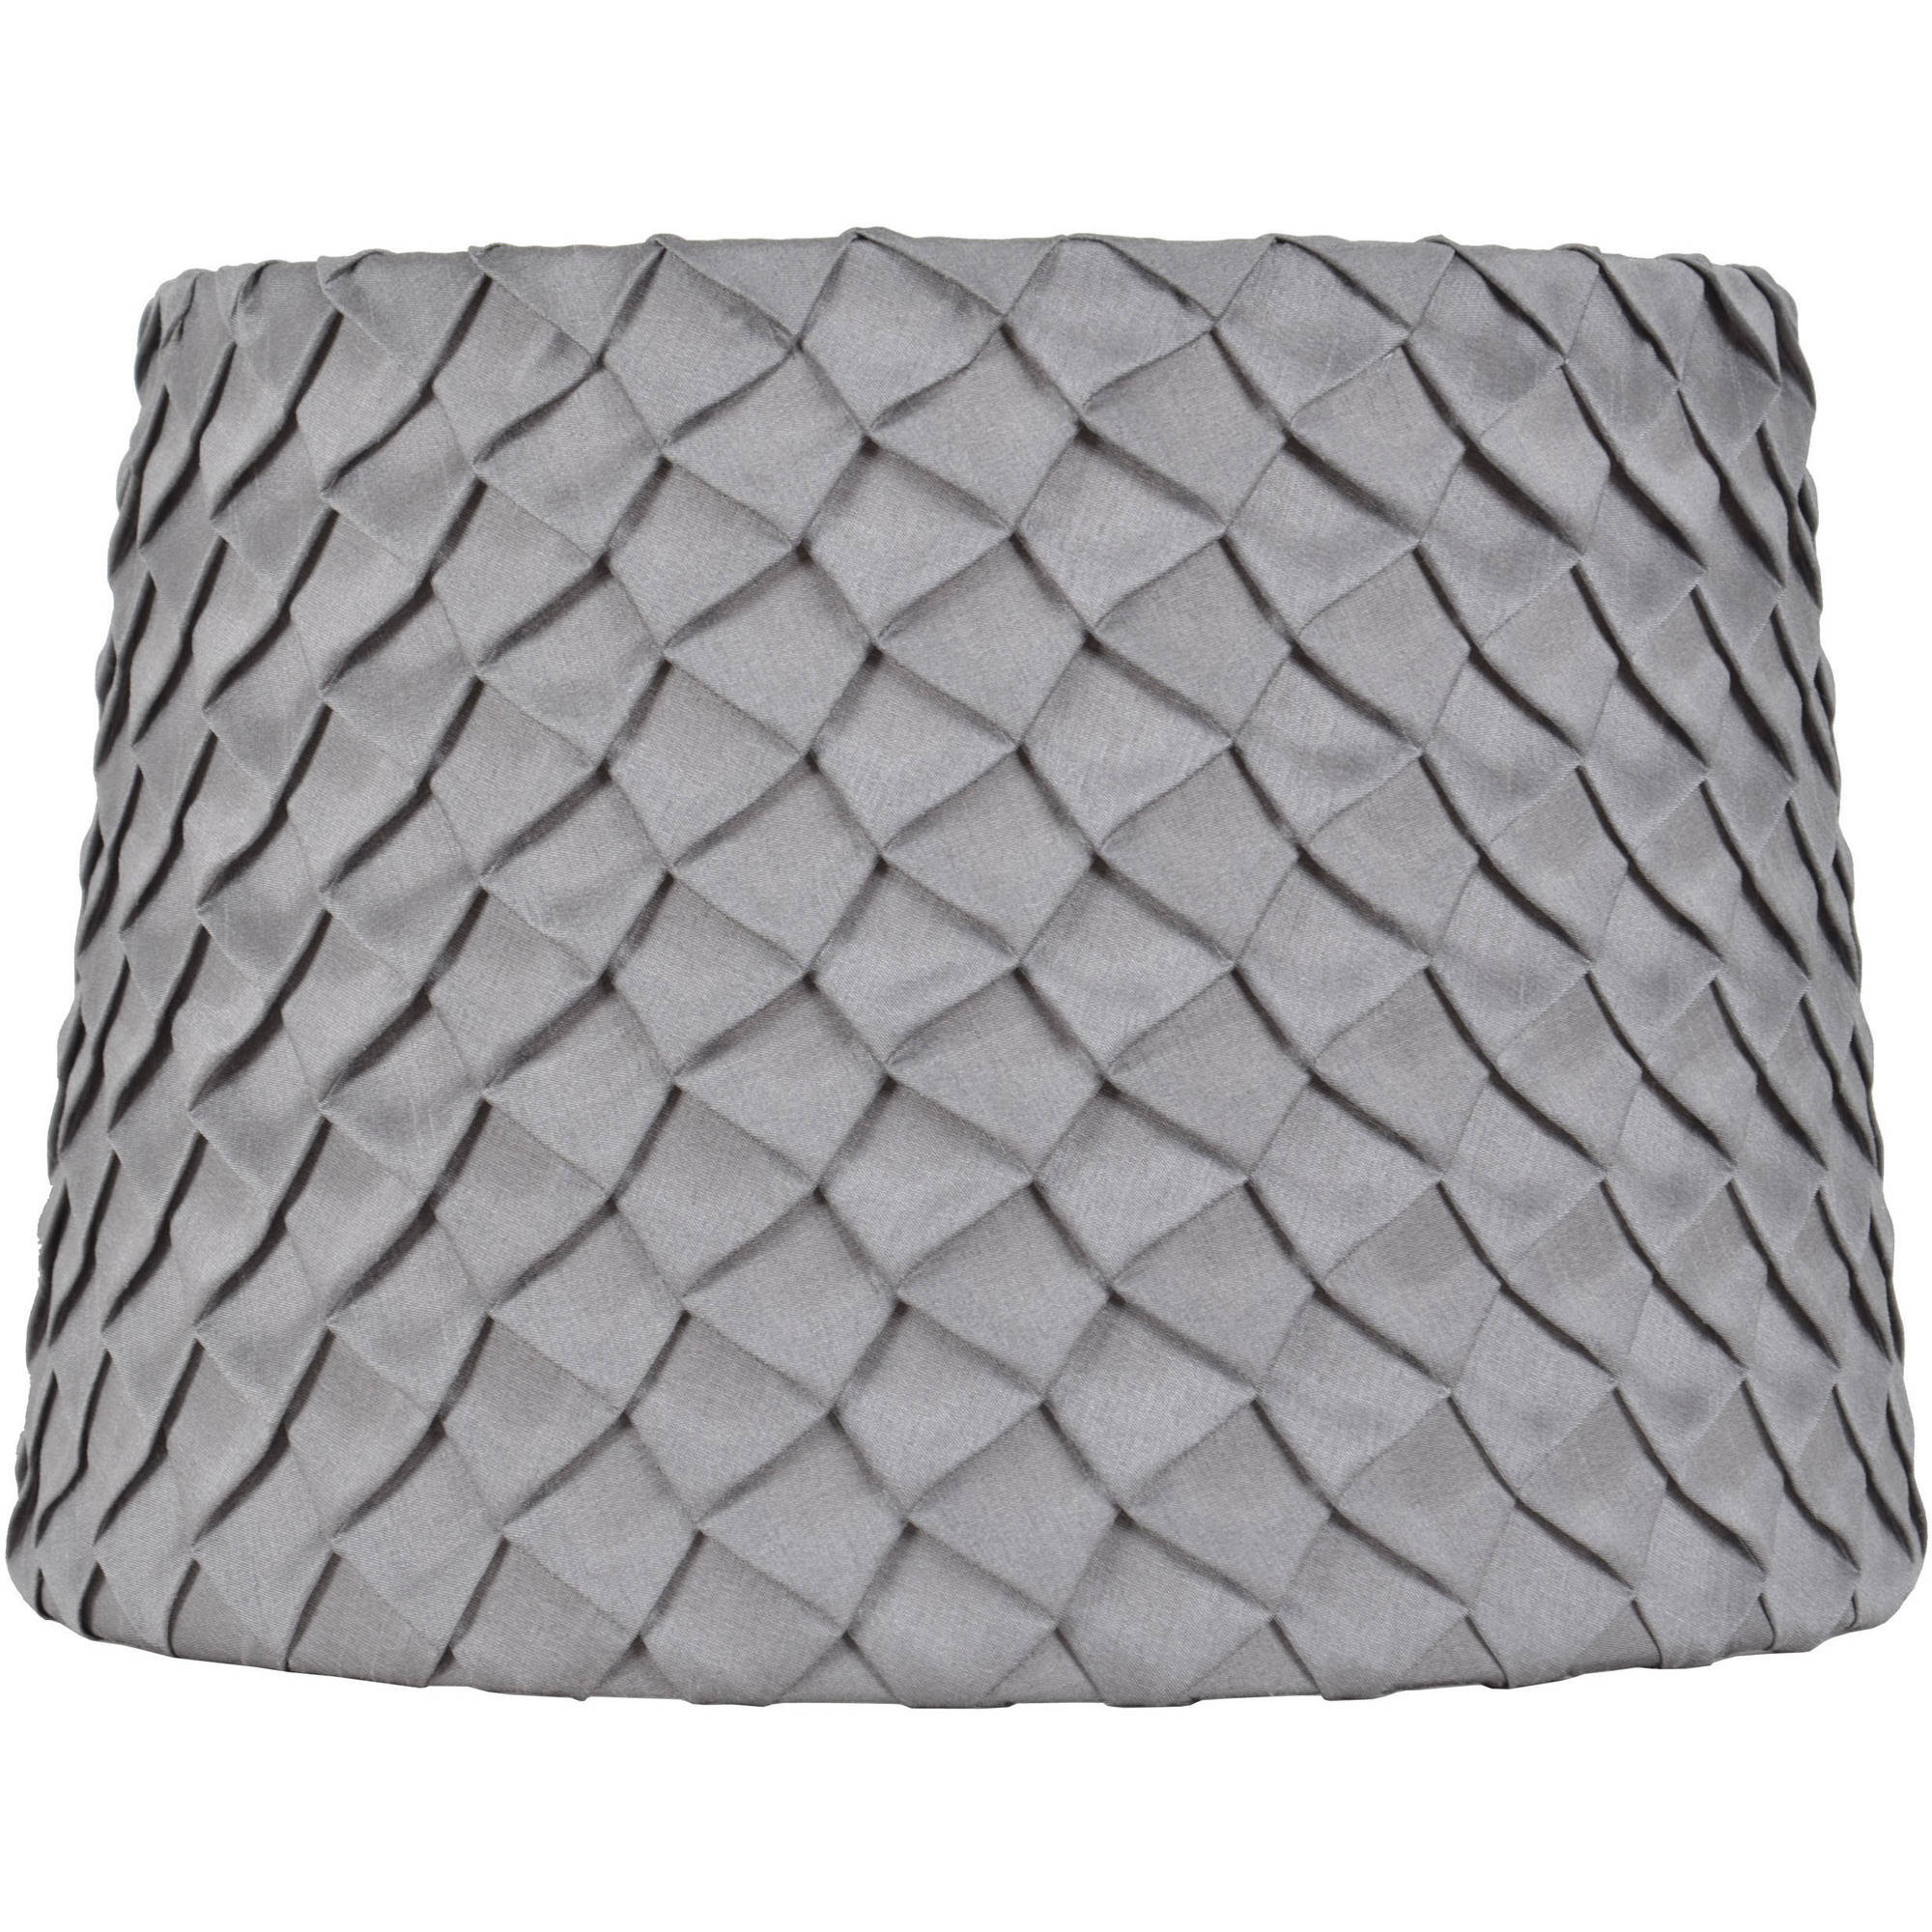 Gray Shades lamp shades - walmart